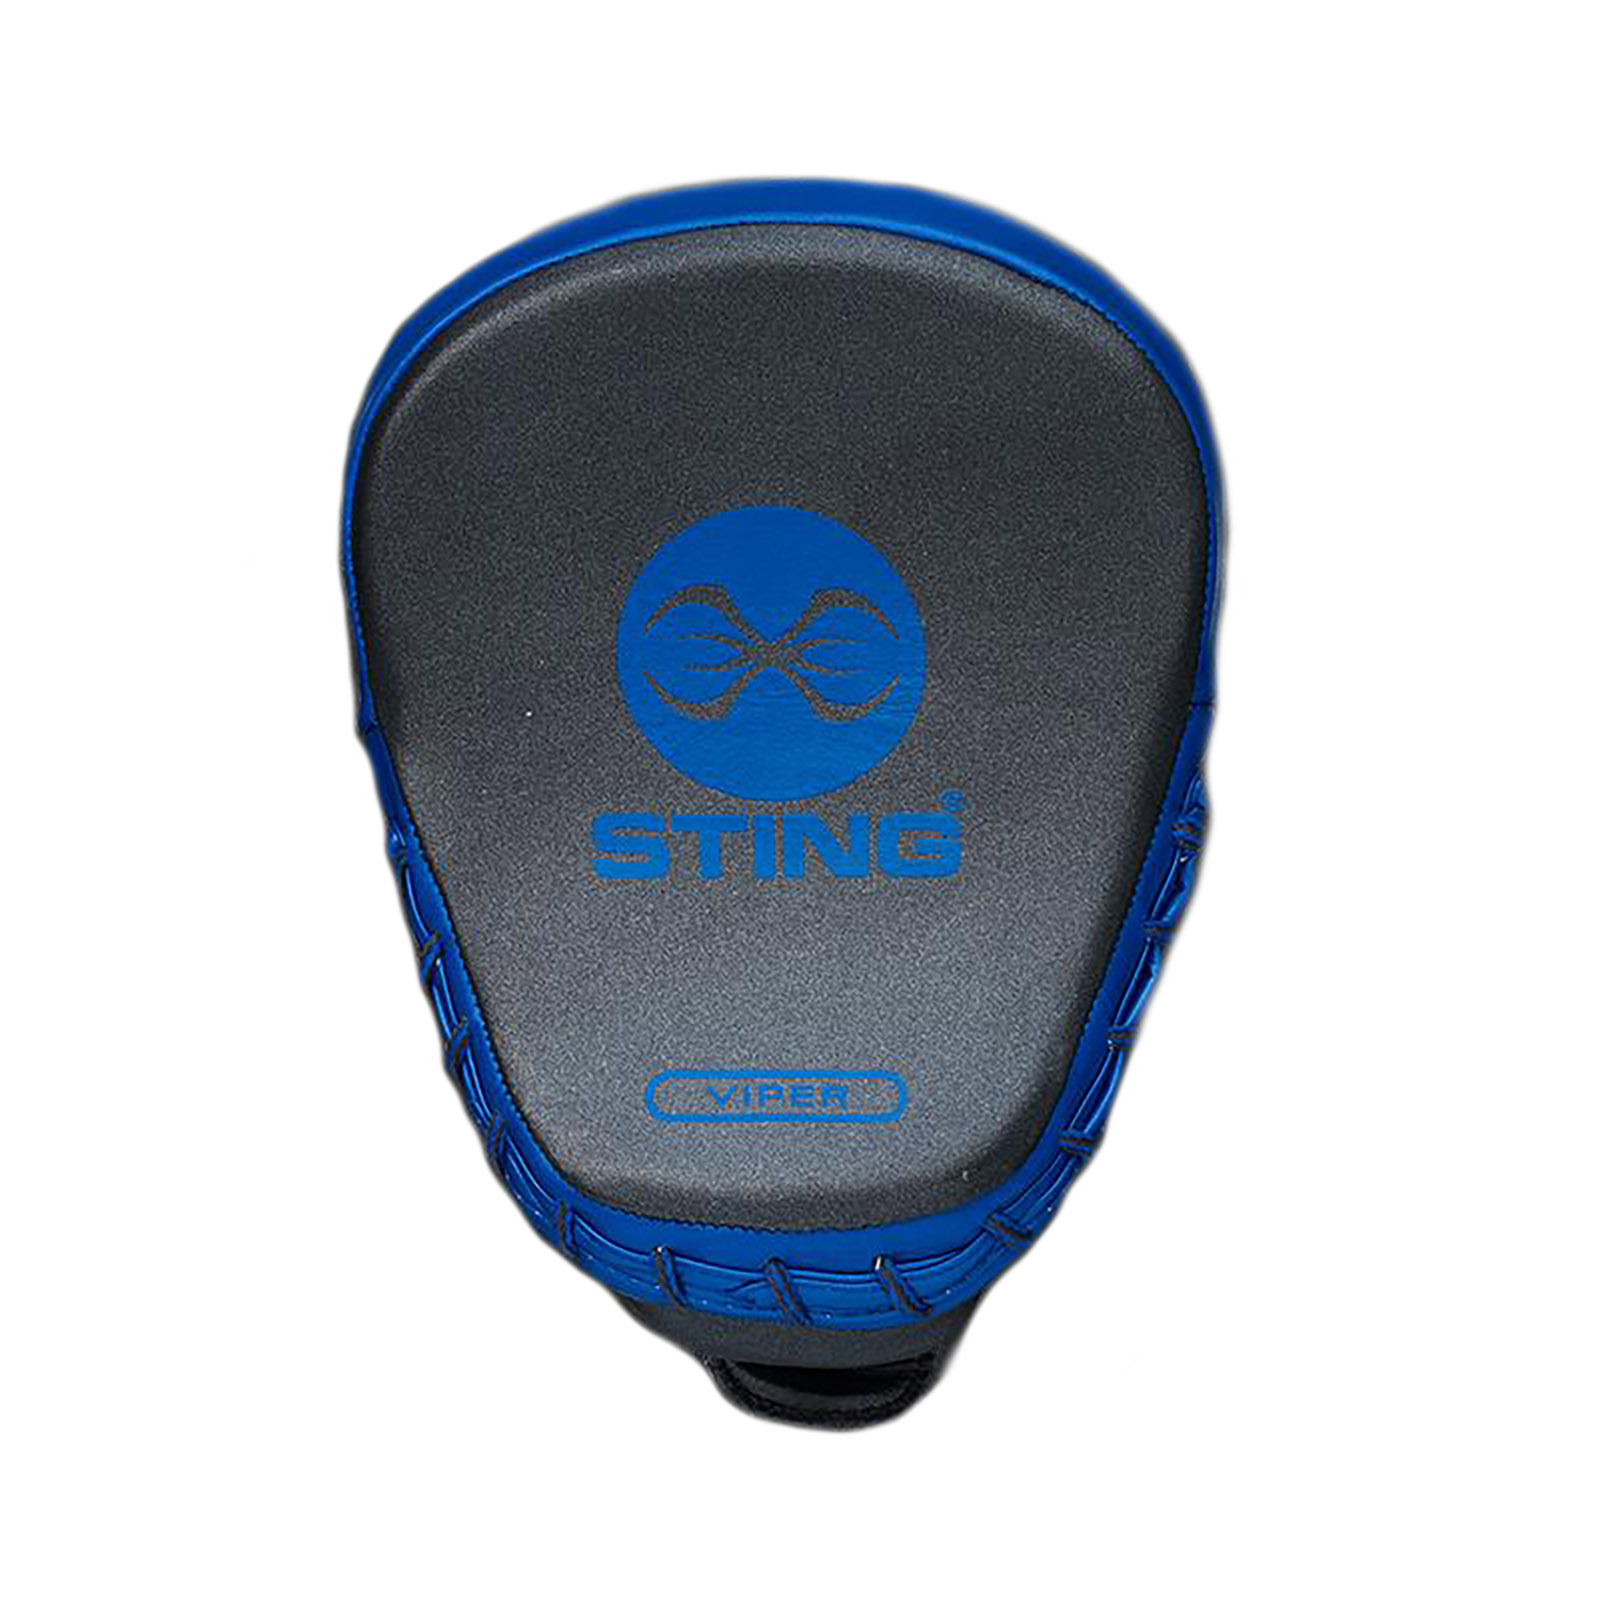 sting viper mitts